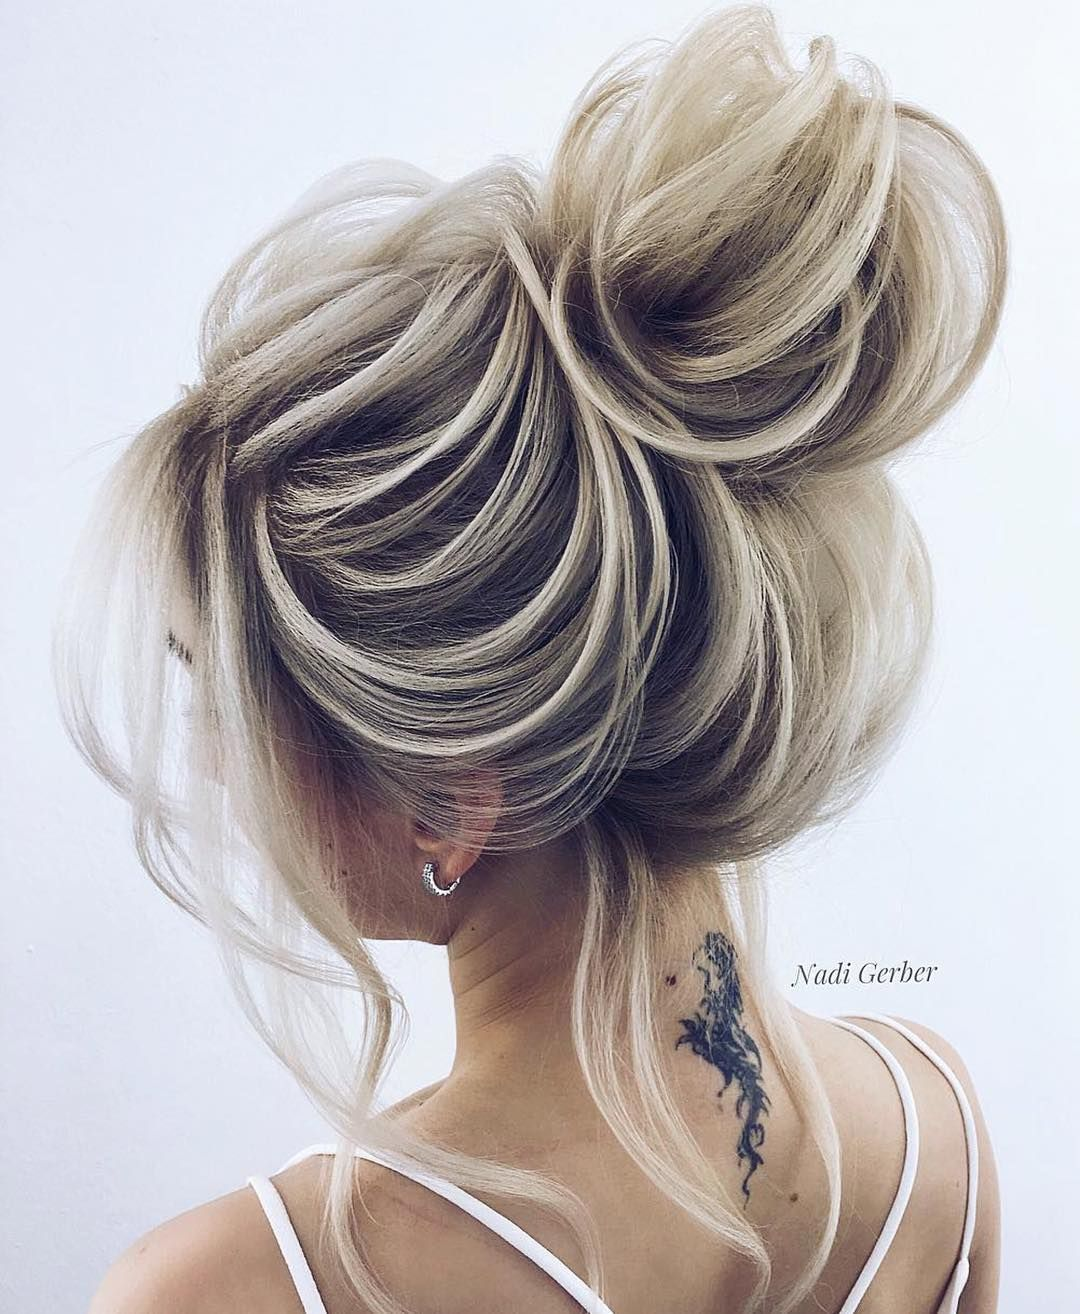 1 2 3 4 5 6 7 8 9 Or 10 Which One Is Your Favorite Hairstyle Follow Us Going Out Hairstyles Hair Upstyles Night Out Hairstyles